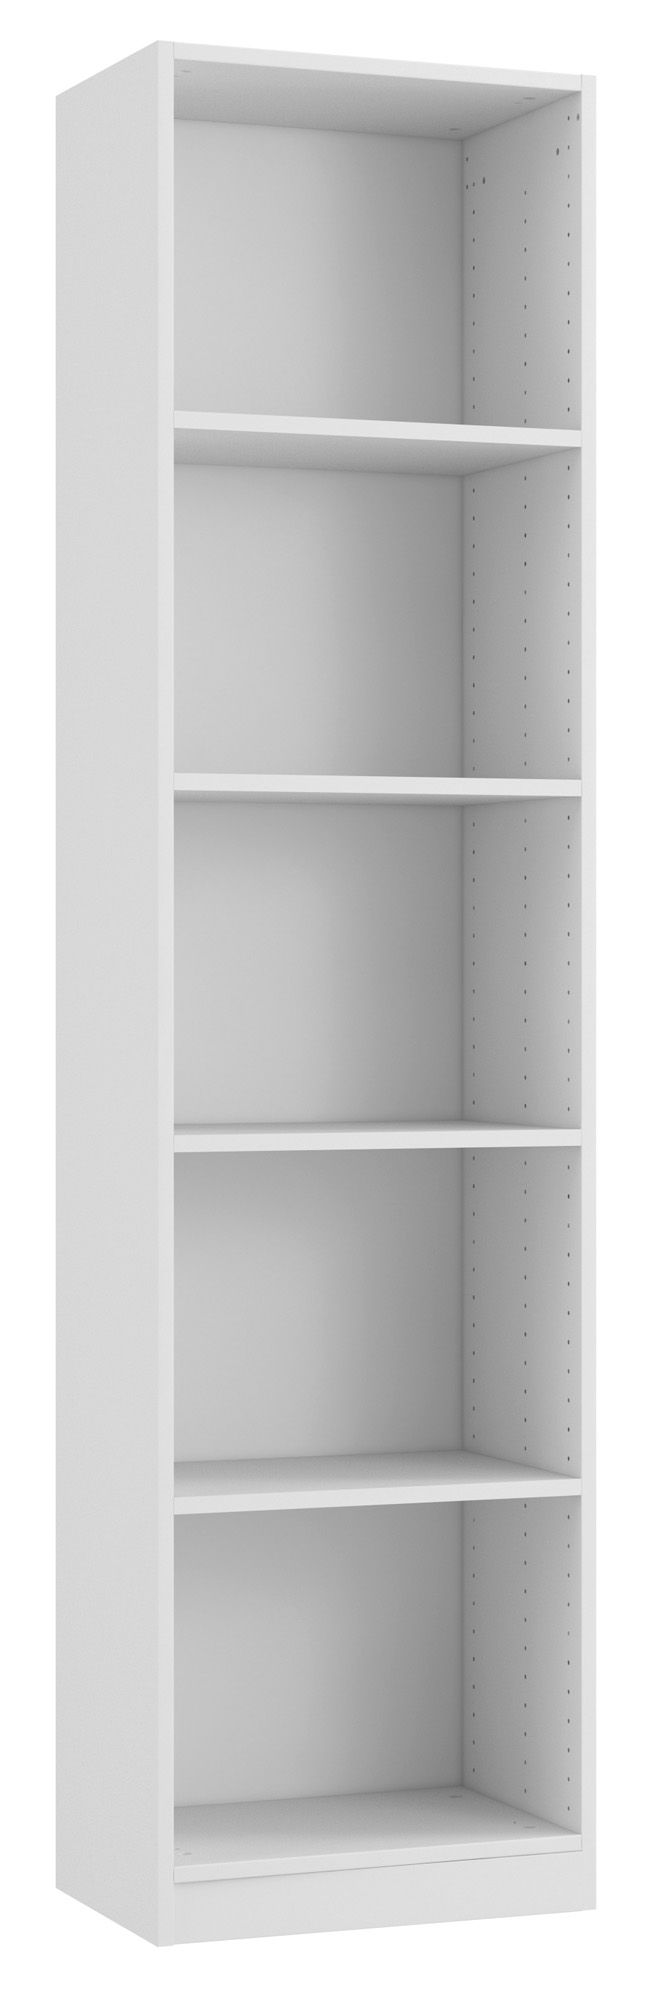 Form Darwin White Gloss 4 Shelf Bookcase H 2004mm W 500mm D 374mm Departments Diy At B Q